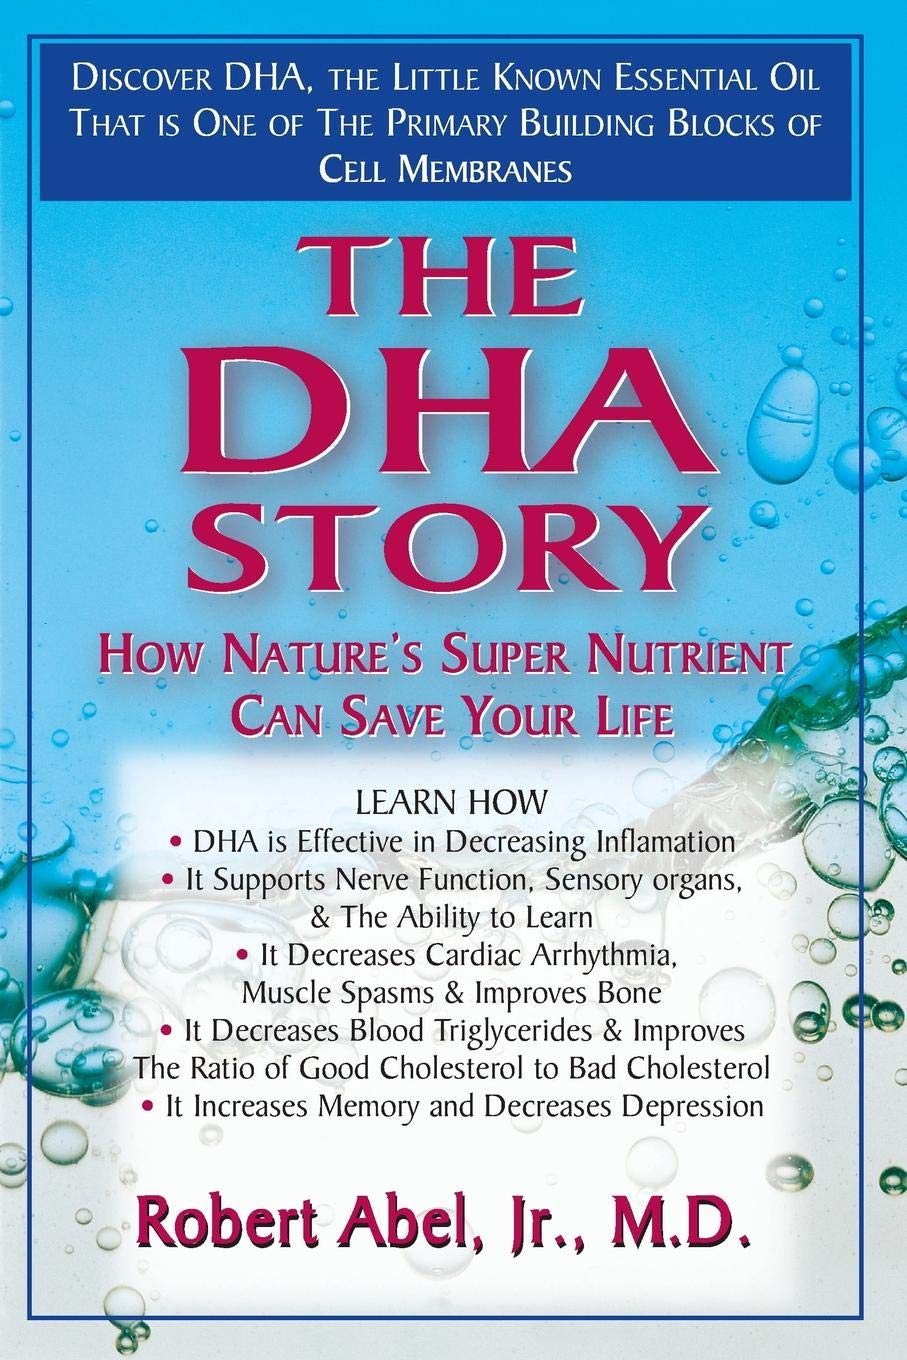 the DHA story - By Robert AbelDHA is an essential building block of the membranes of brain cells and retinal photoreceptors. In fact, each and every cell membrane in the body gains strength and flexibility from this omega-3 polyunsaturated fatty acid. DHA has been shown to deactivate the enzymes that destroy cartilage and is therefore useful in protecting against arthritis.In addition, it is a biochemical sponge that can literally soak up the free radicals which are responsible for a host of degenerative diseases. And low levels of DHA have been implicated in ADD – attention deficit disorder – Alzheimer's and depression. In fact, studies reveal that brains of Alzheimer's patients have 30 percent less DHA than brains of comparably aged people who do not have the disease.In The DHA Story: How Nature's Super Nutrient Can Save Your Life, noted physician and author Robert Abel Jr., M.D., delivers the scientific evidence for the importance of this amazing nutrient. In so doing, he takes the reader on a journey through time, back to discover the very base of the food chain…back to a time before synthetic chemicals and refined foods had interfered with the framework of living cells. You'll learn how to use that framework to help you counteract the negative effects of refined sugar and flour, saturated fats and oils, artificial sweeteners and colorings, alcohol and pollutants. The DHA Story: How Nature's Super Nutrient Can Save Your Life will help you increase your consumption of DHA to improve your vital functions and mental status.